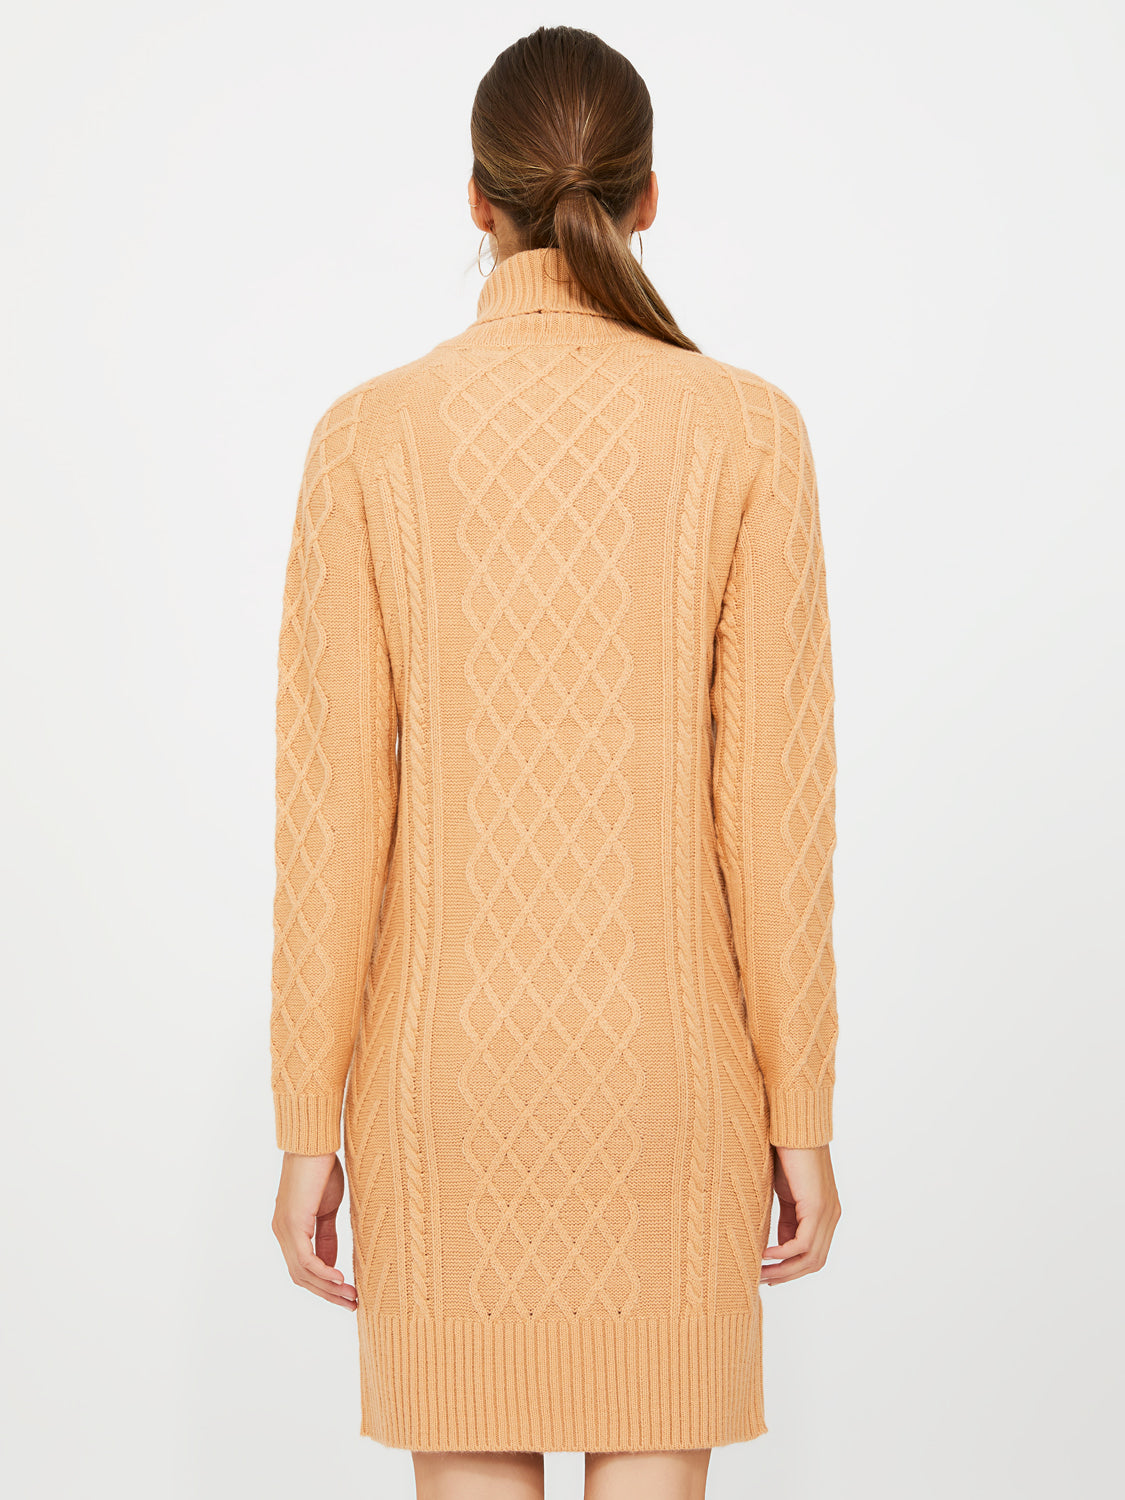 Turtleneck Cable Knit Sweater Dress